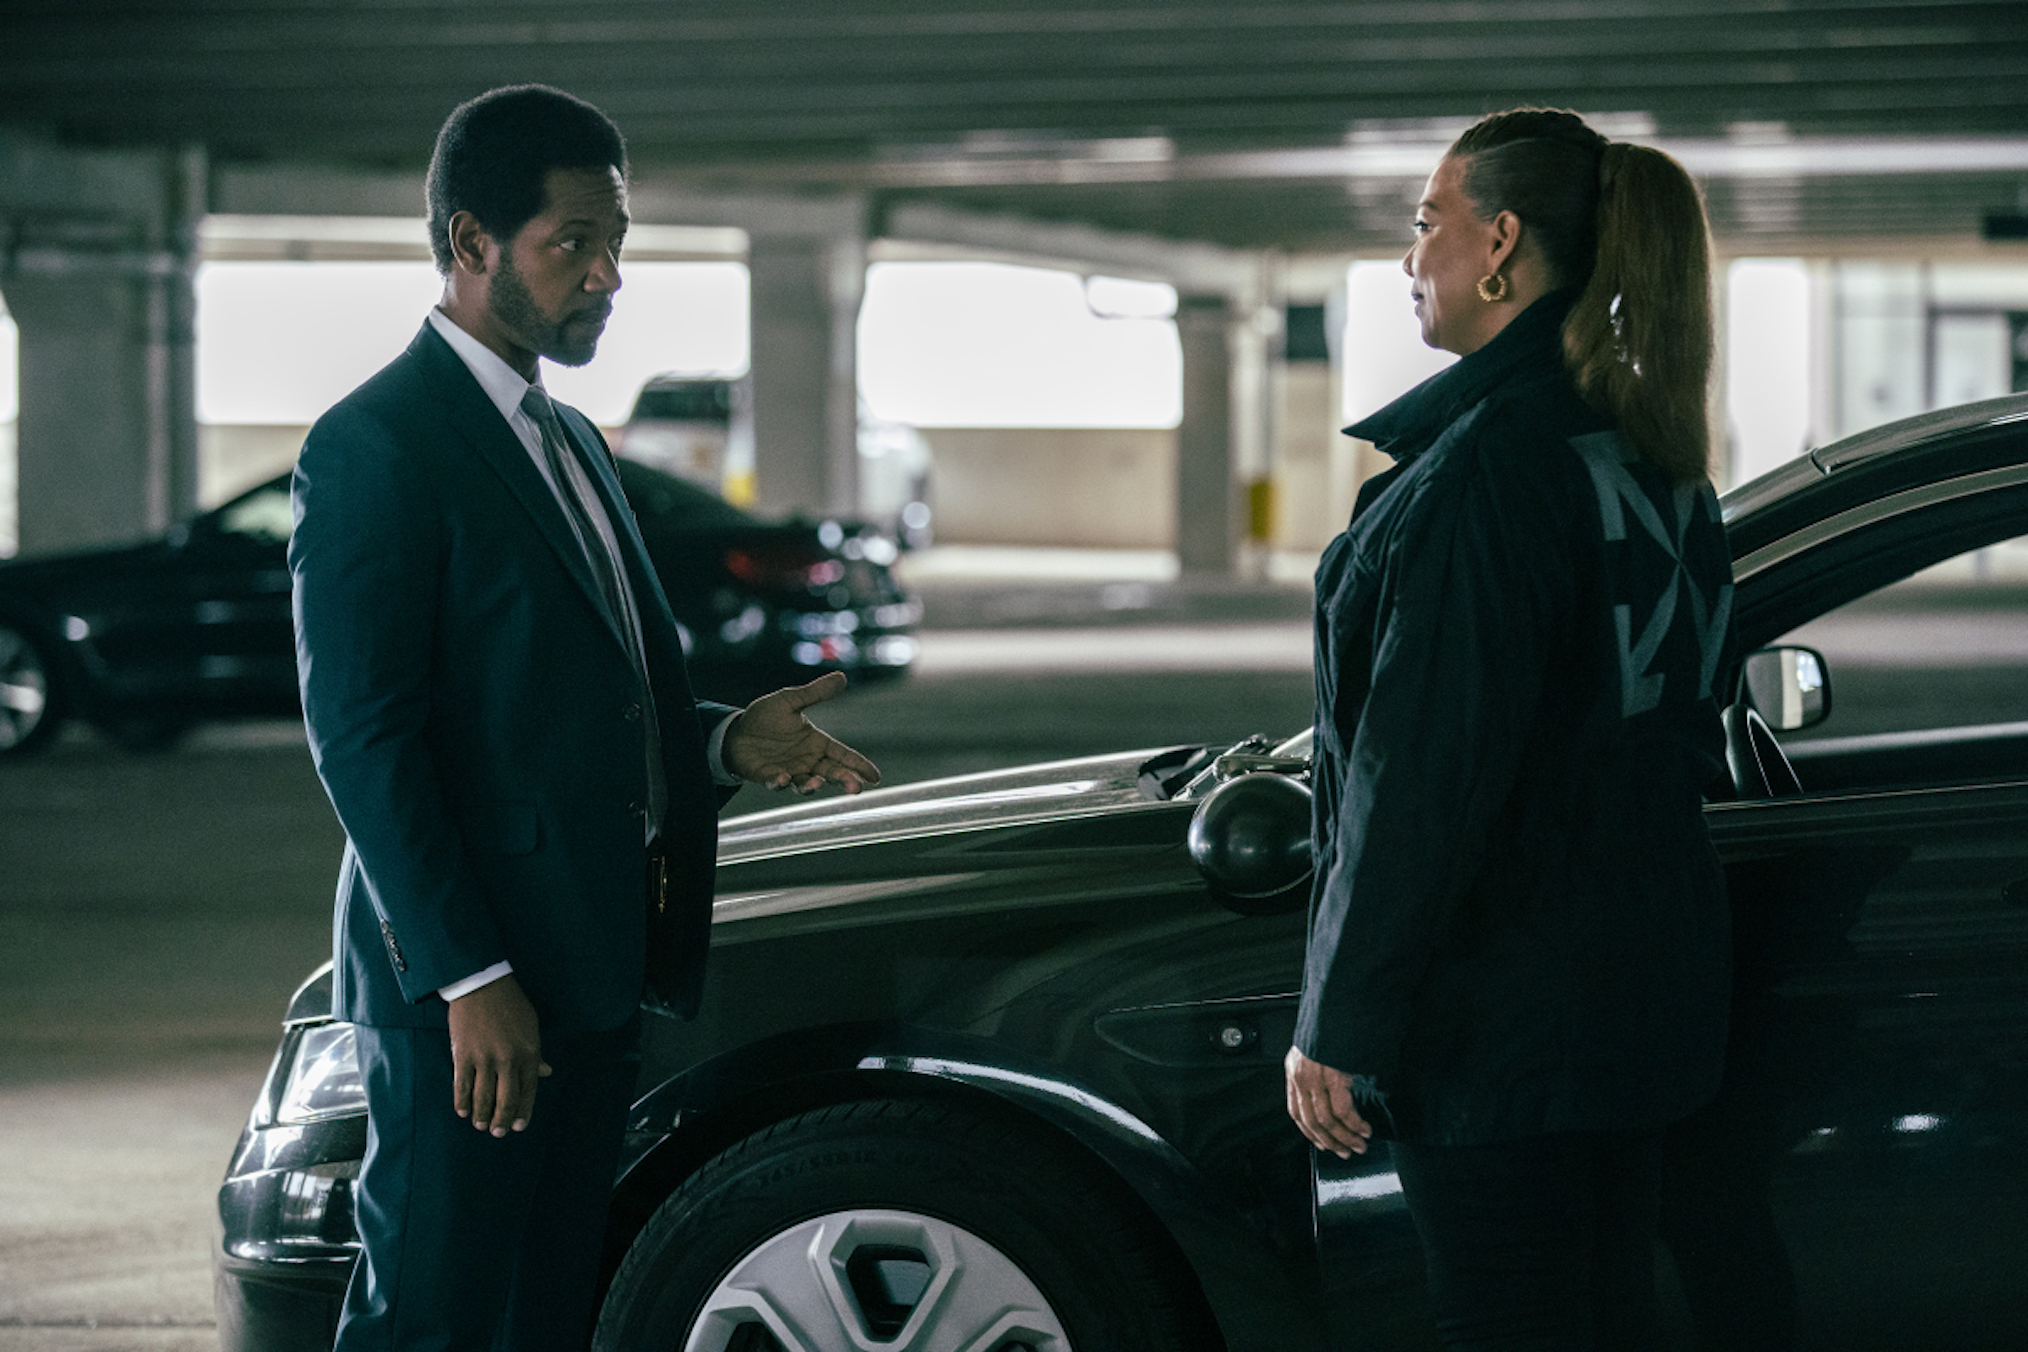 Tory Kittles as Detective Marcus Dante, Queen Latifah as Robyn McCall in The Equalizer